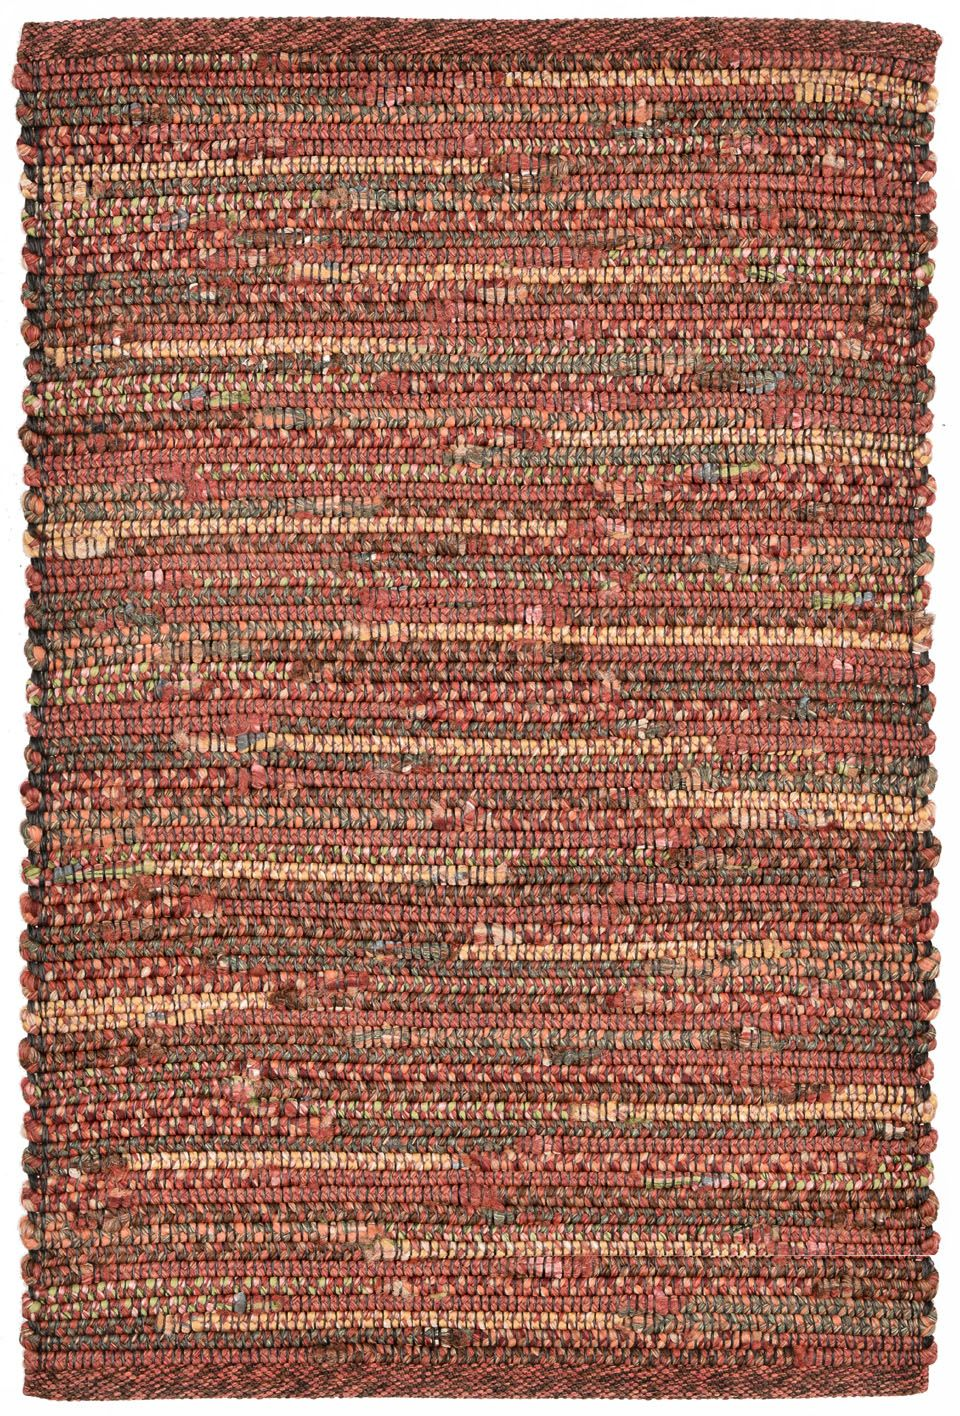 Your Source For The Finest Rugs Home Decor Fashion Accessories Red Rugs Rugs Plain Rugs